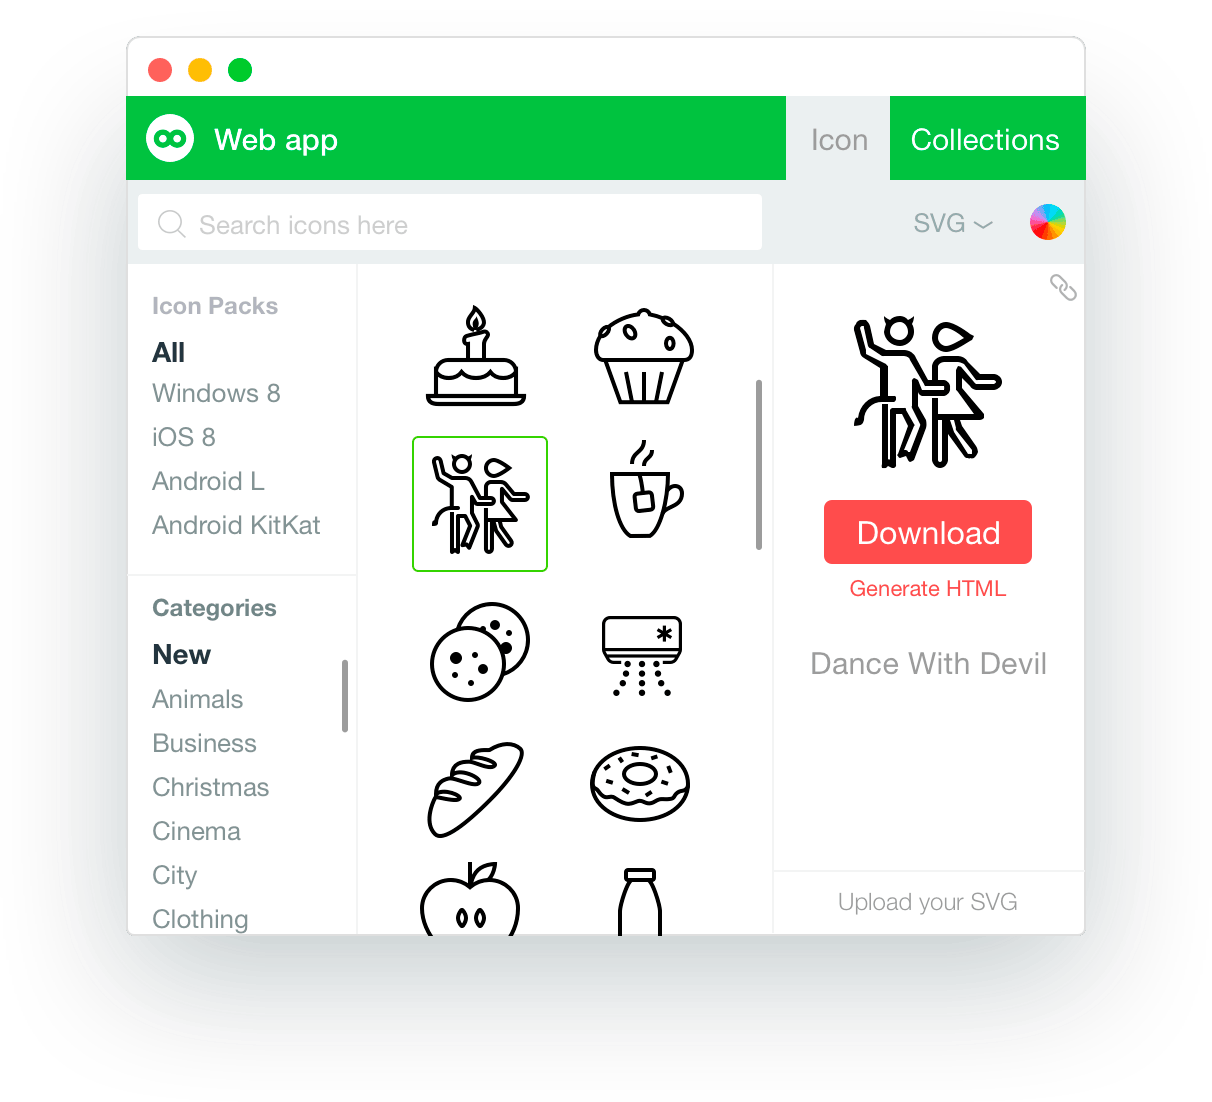 Free download of 9700+ icons in Windows 8, iOS 8 and